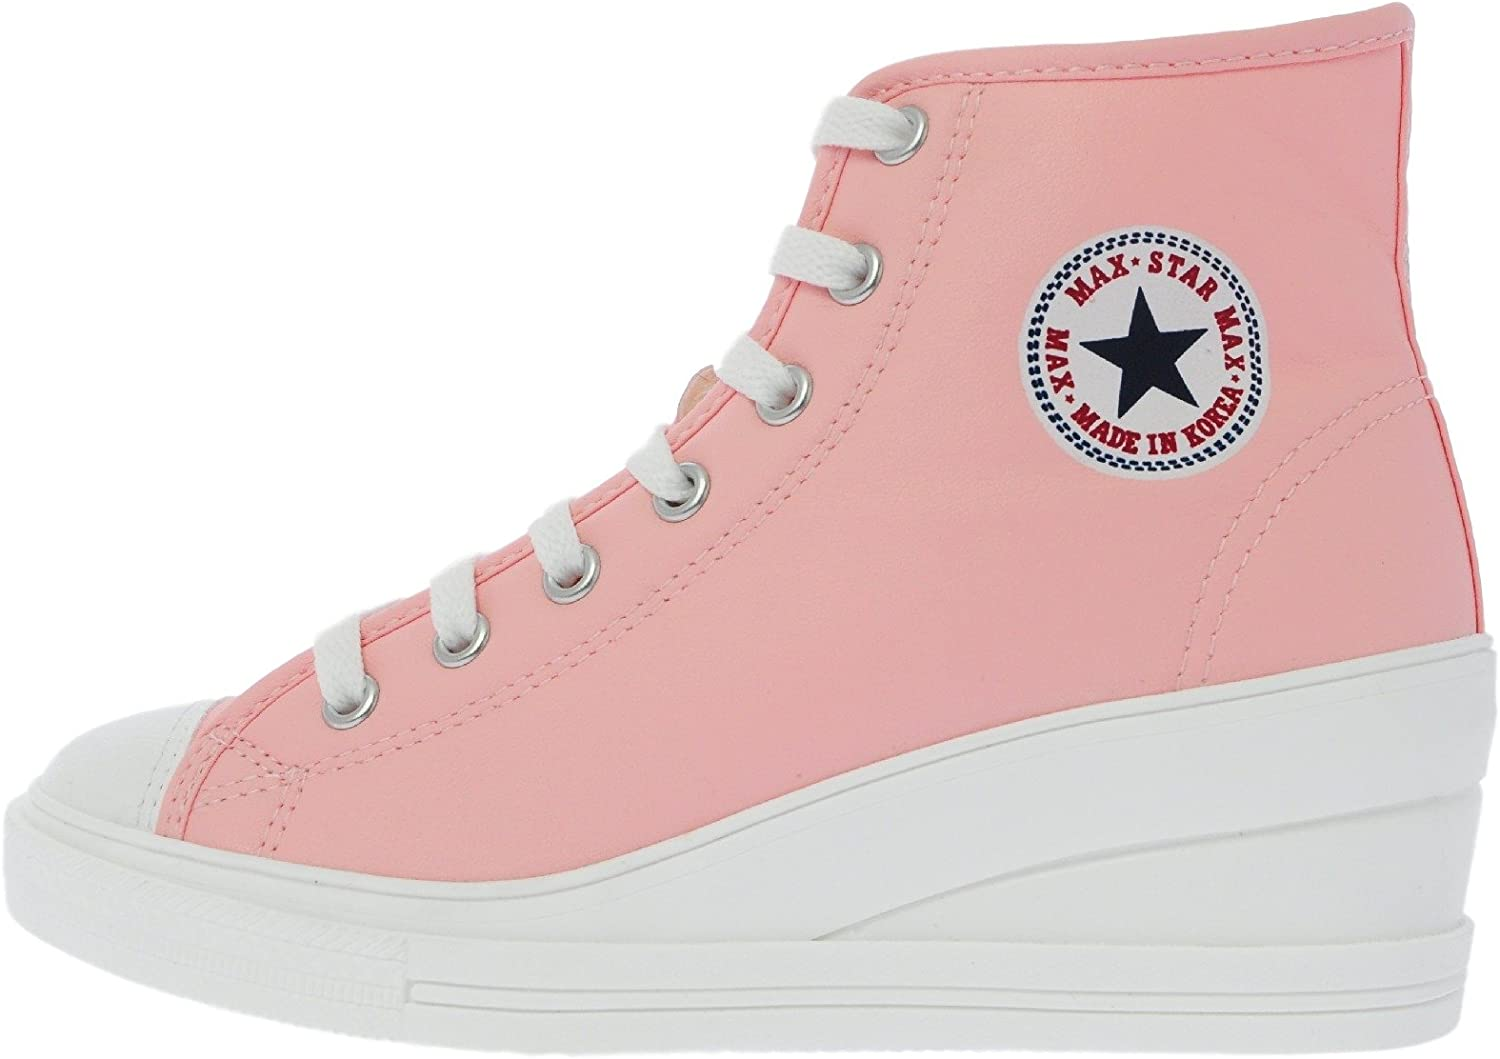 Maxstar 7H 7 Holes Synthetic Leather Side Zipper White Platform High Top Sneakers